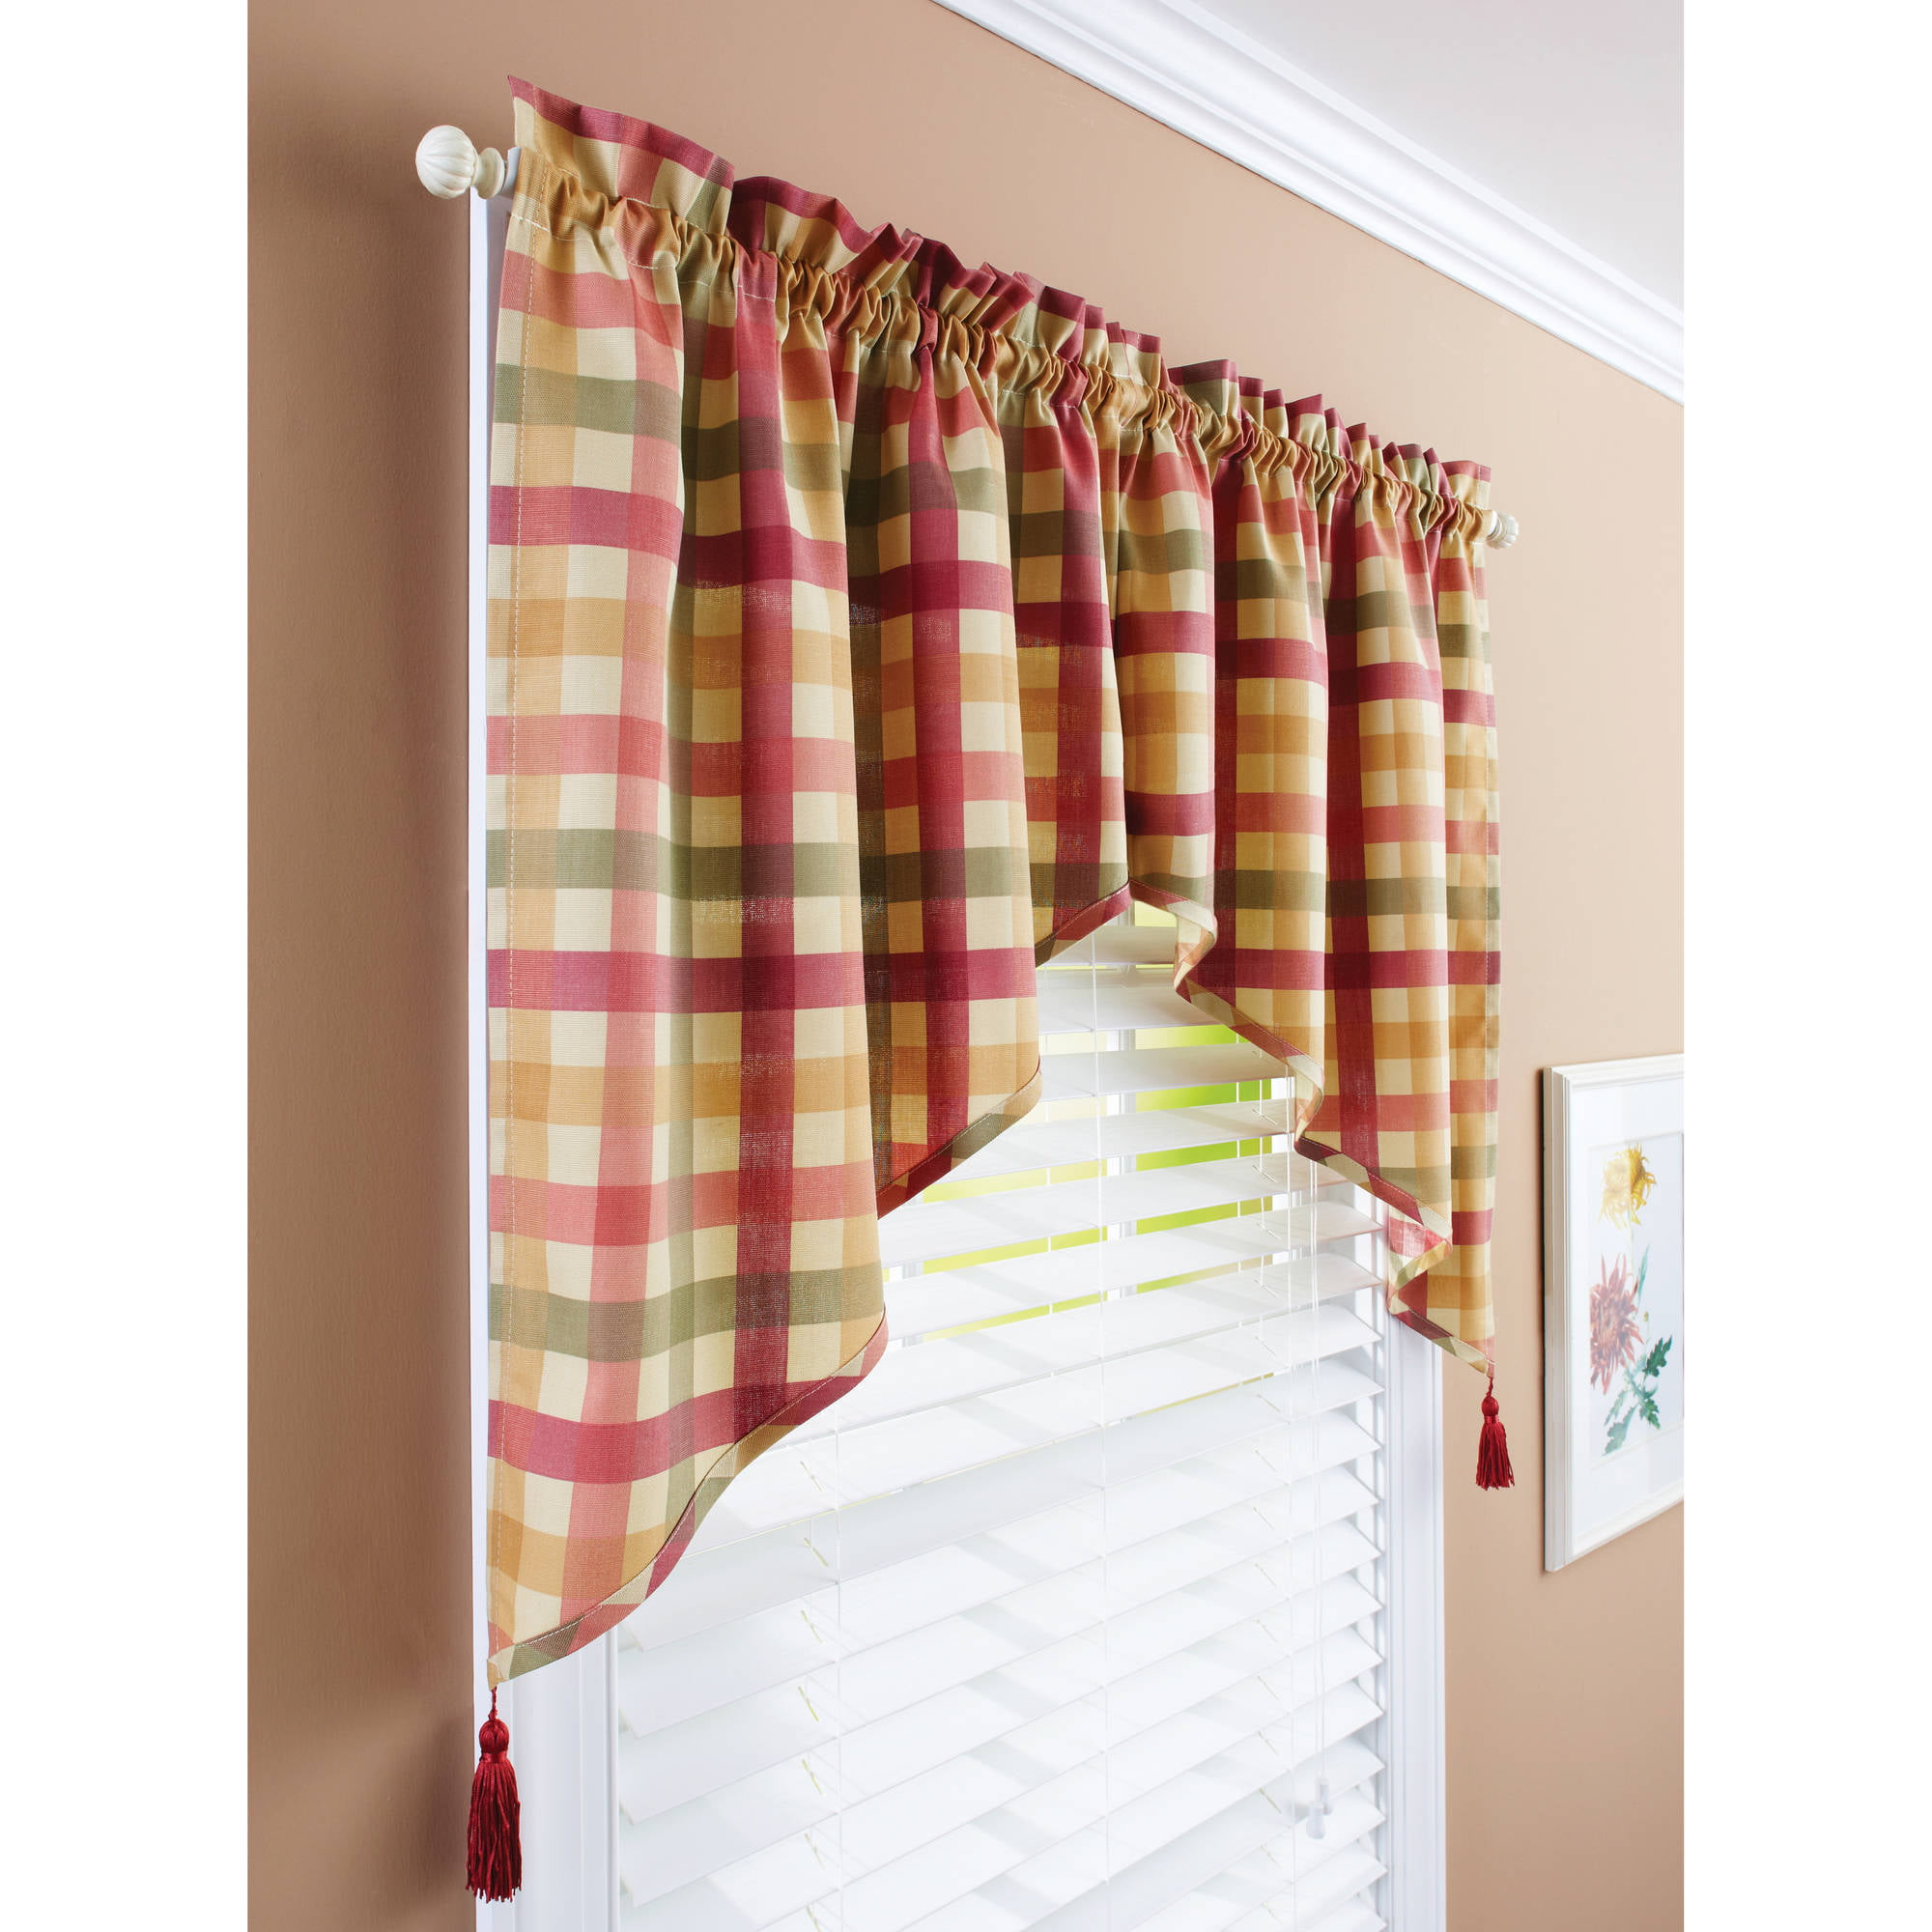 sharpen sage treatments saturday decor s wid ltd hei knight home window holden green jsp op valance kohl catalog valances